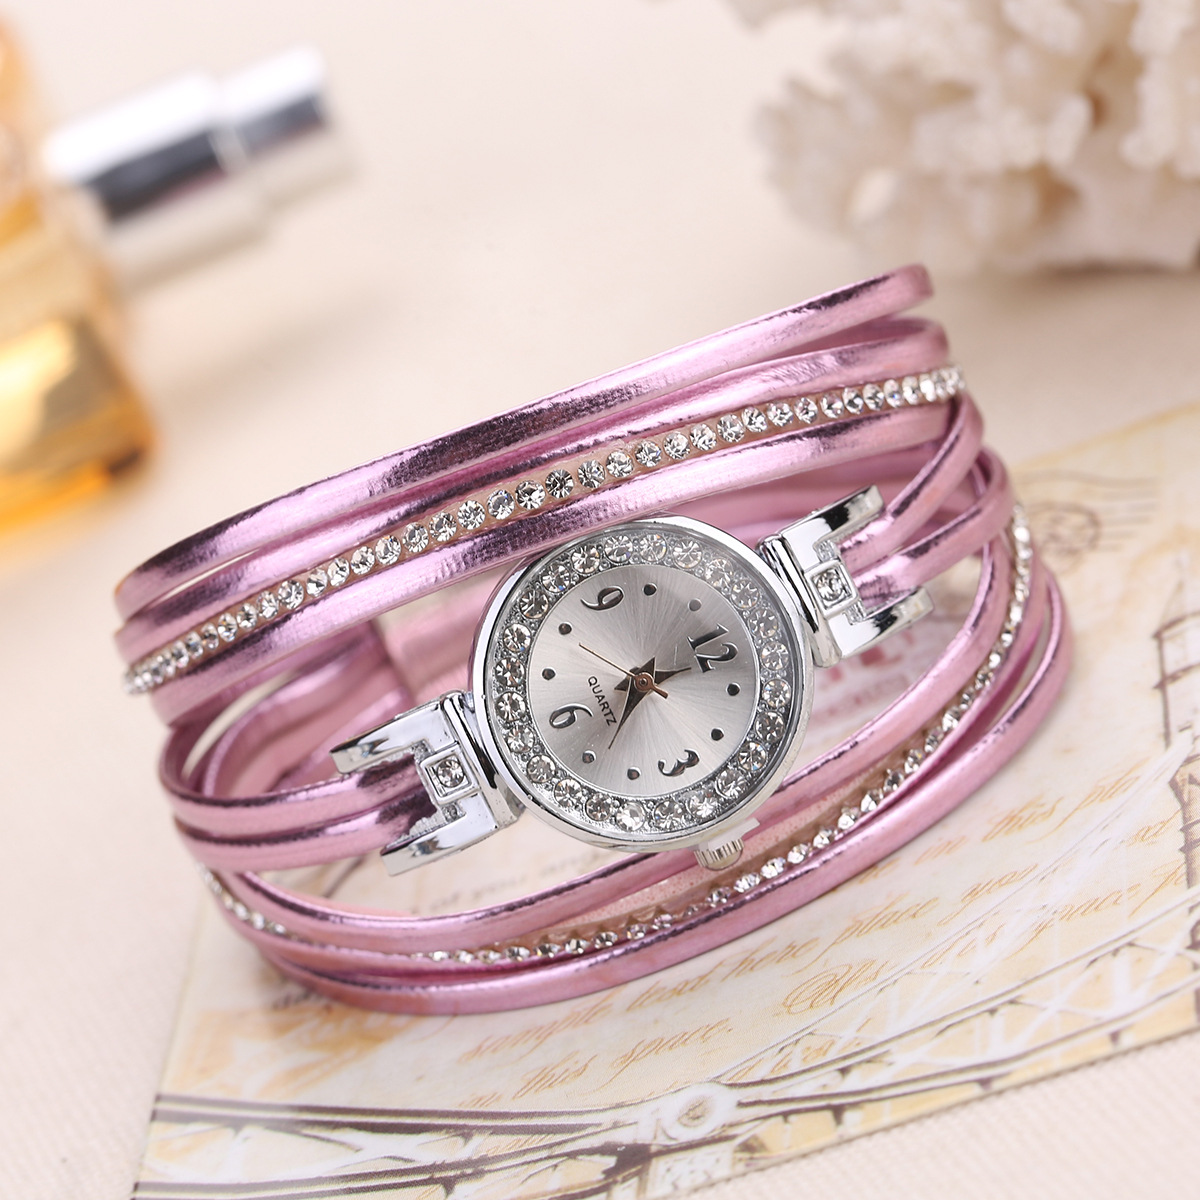 2020 New Arrival Women Luxury Crystal Bracelet Watch Gold Leather Thin Strap Dress Wristwatch Casual Ladies Quartz Clock Ceasuri